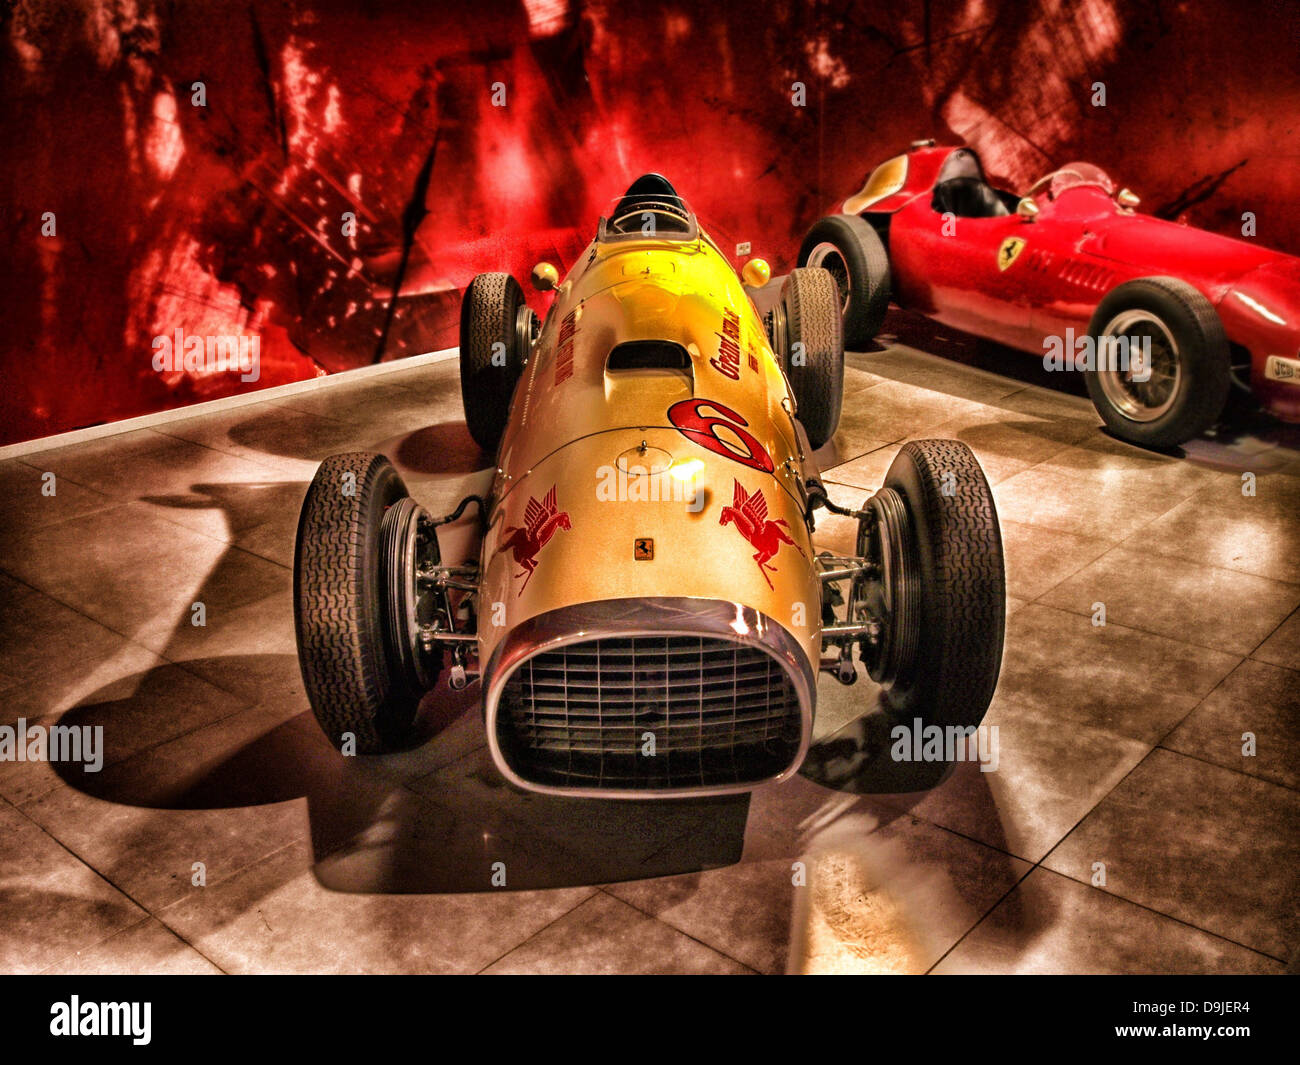 ferrari 1952 racing racer sports car car - Stock Image